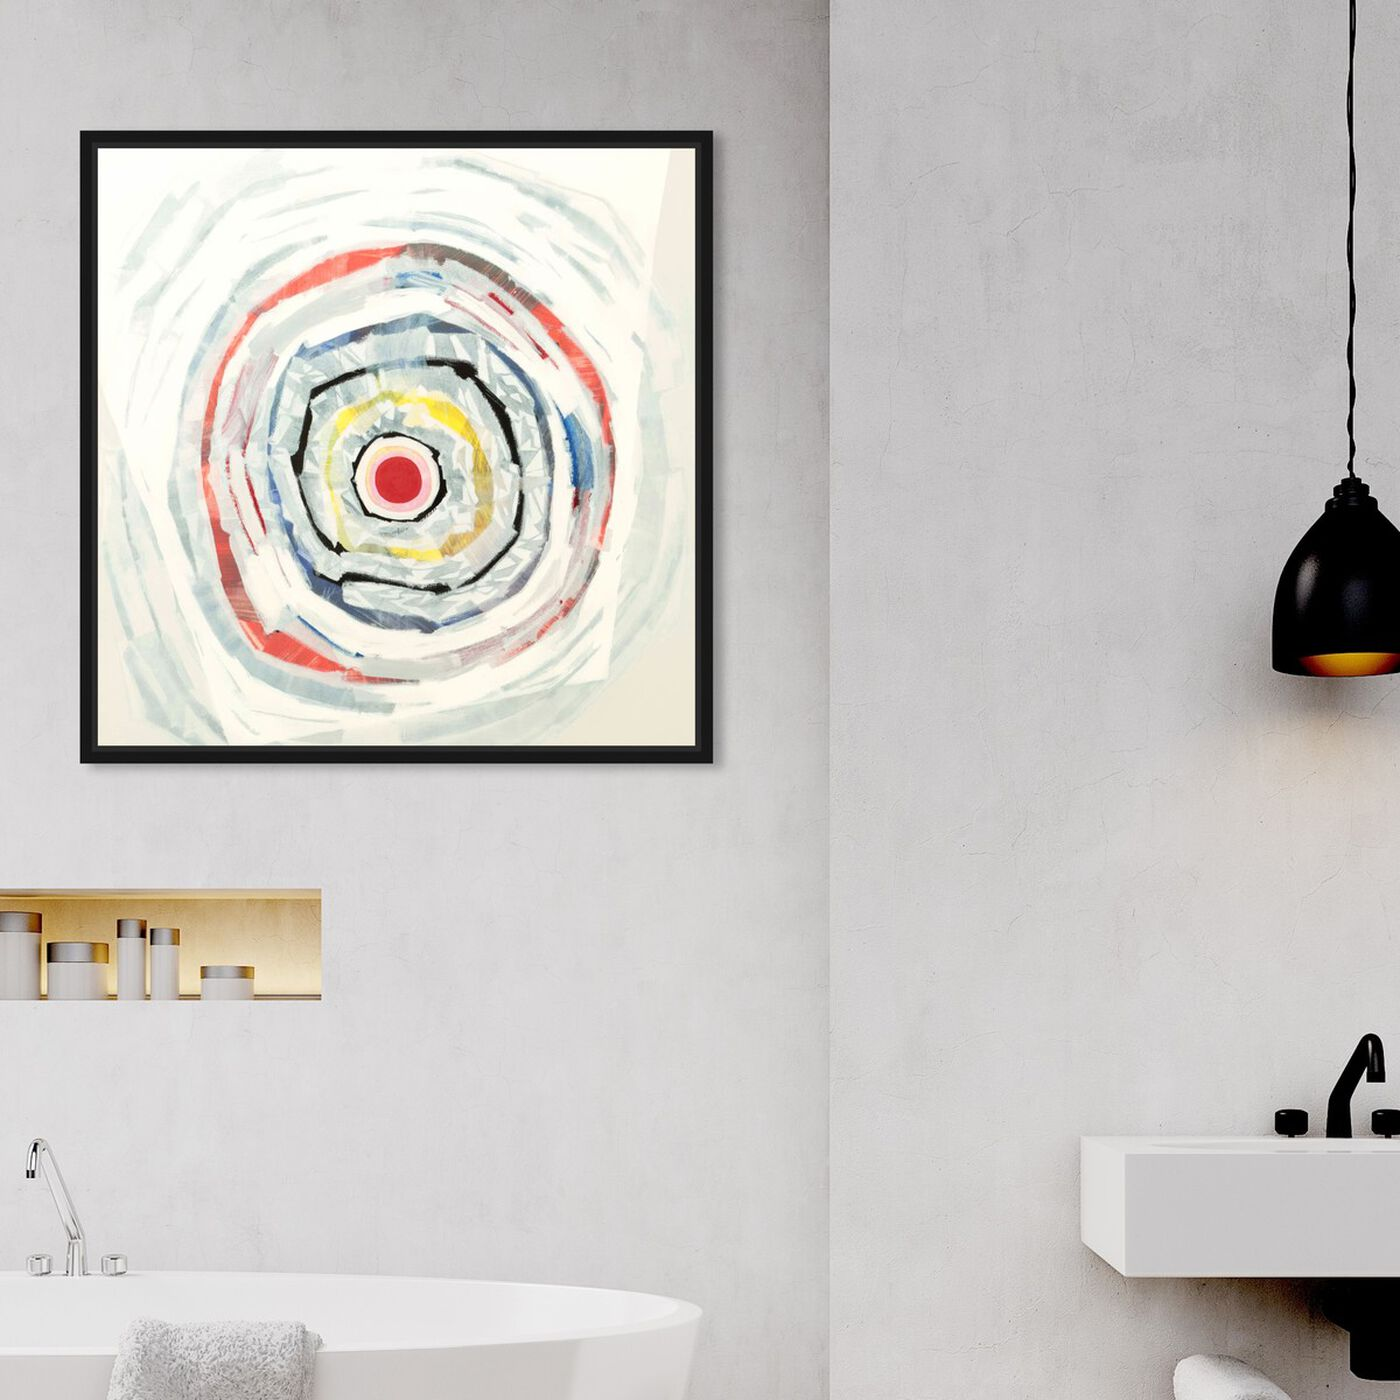 Hanging view of Sai - Pictis Spiralis Blanc 1NM1141 featuring abstract and patterns art.